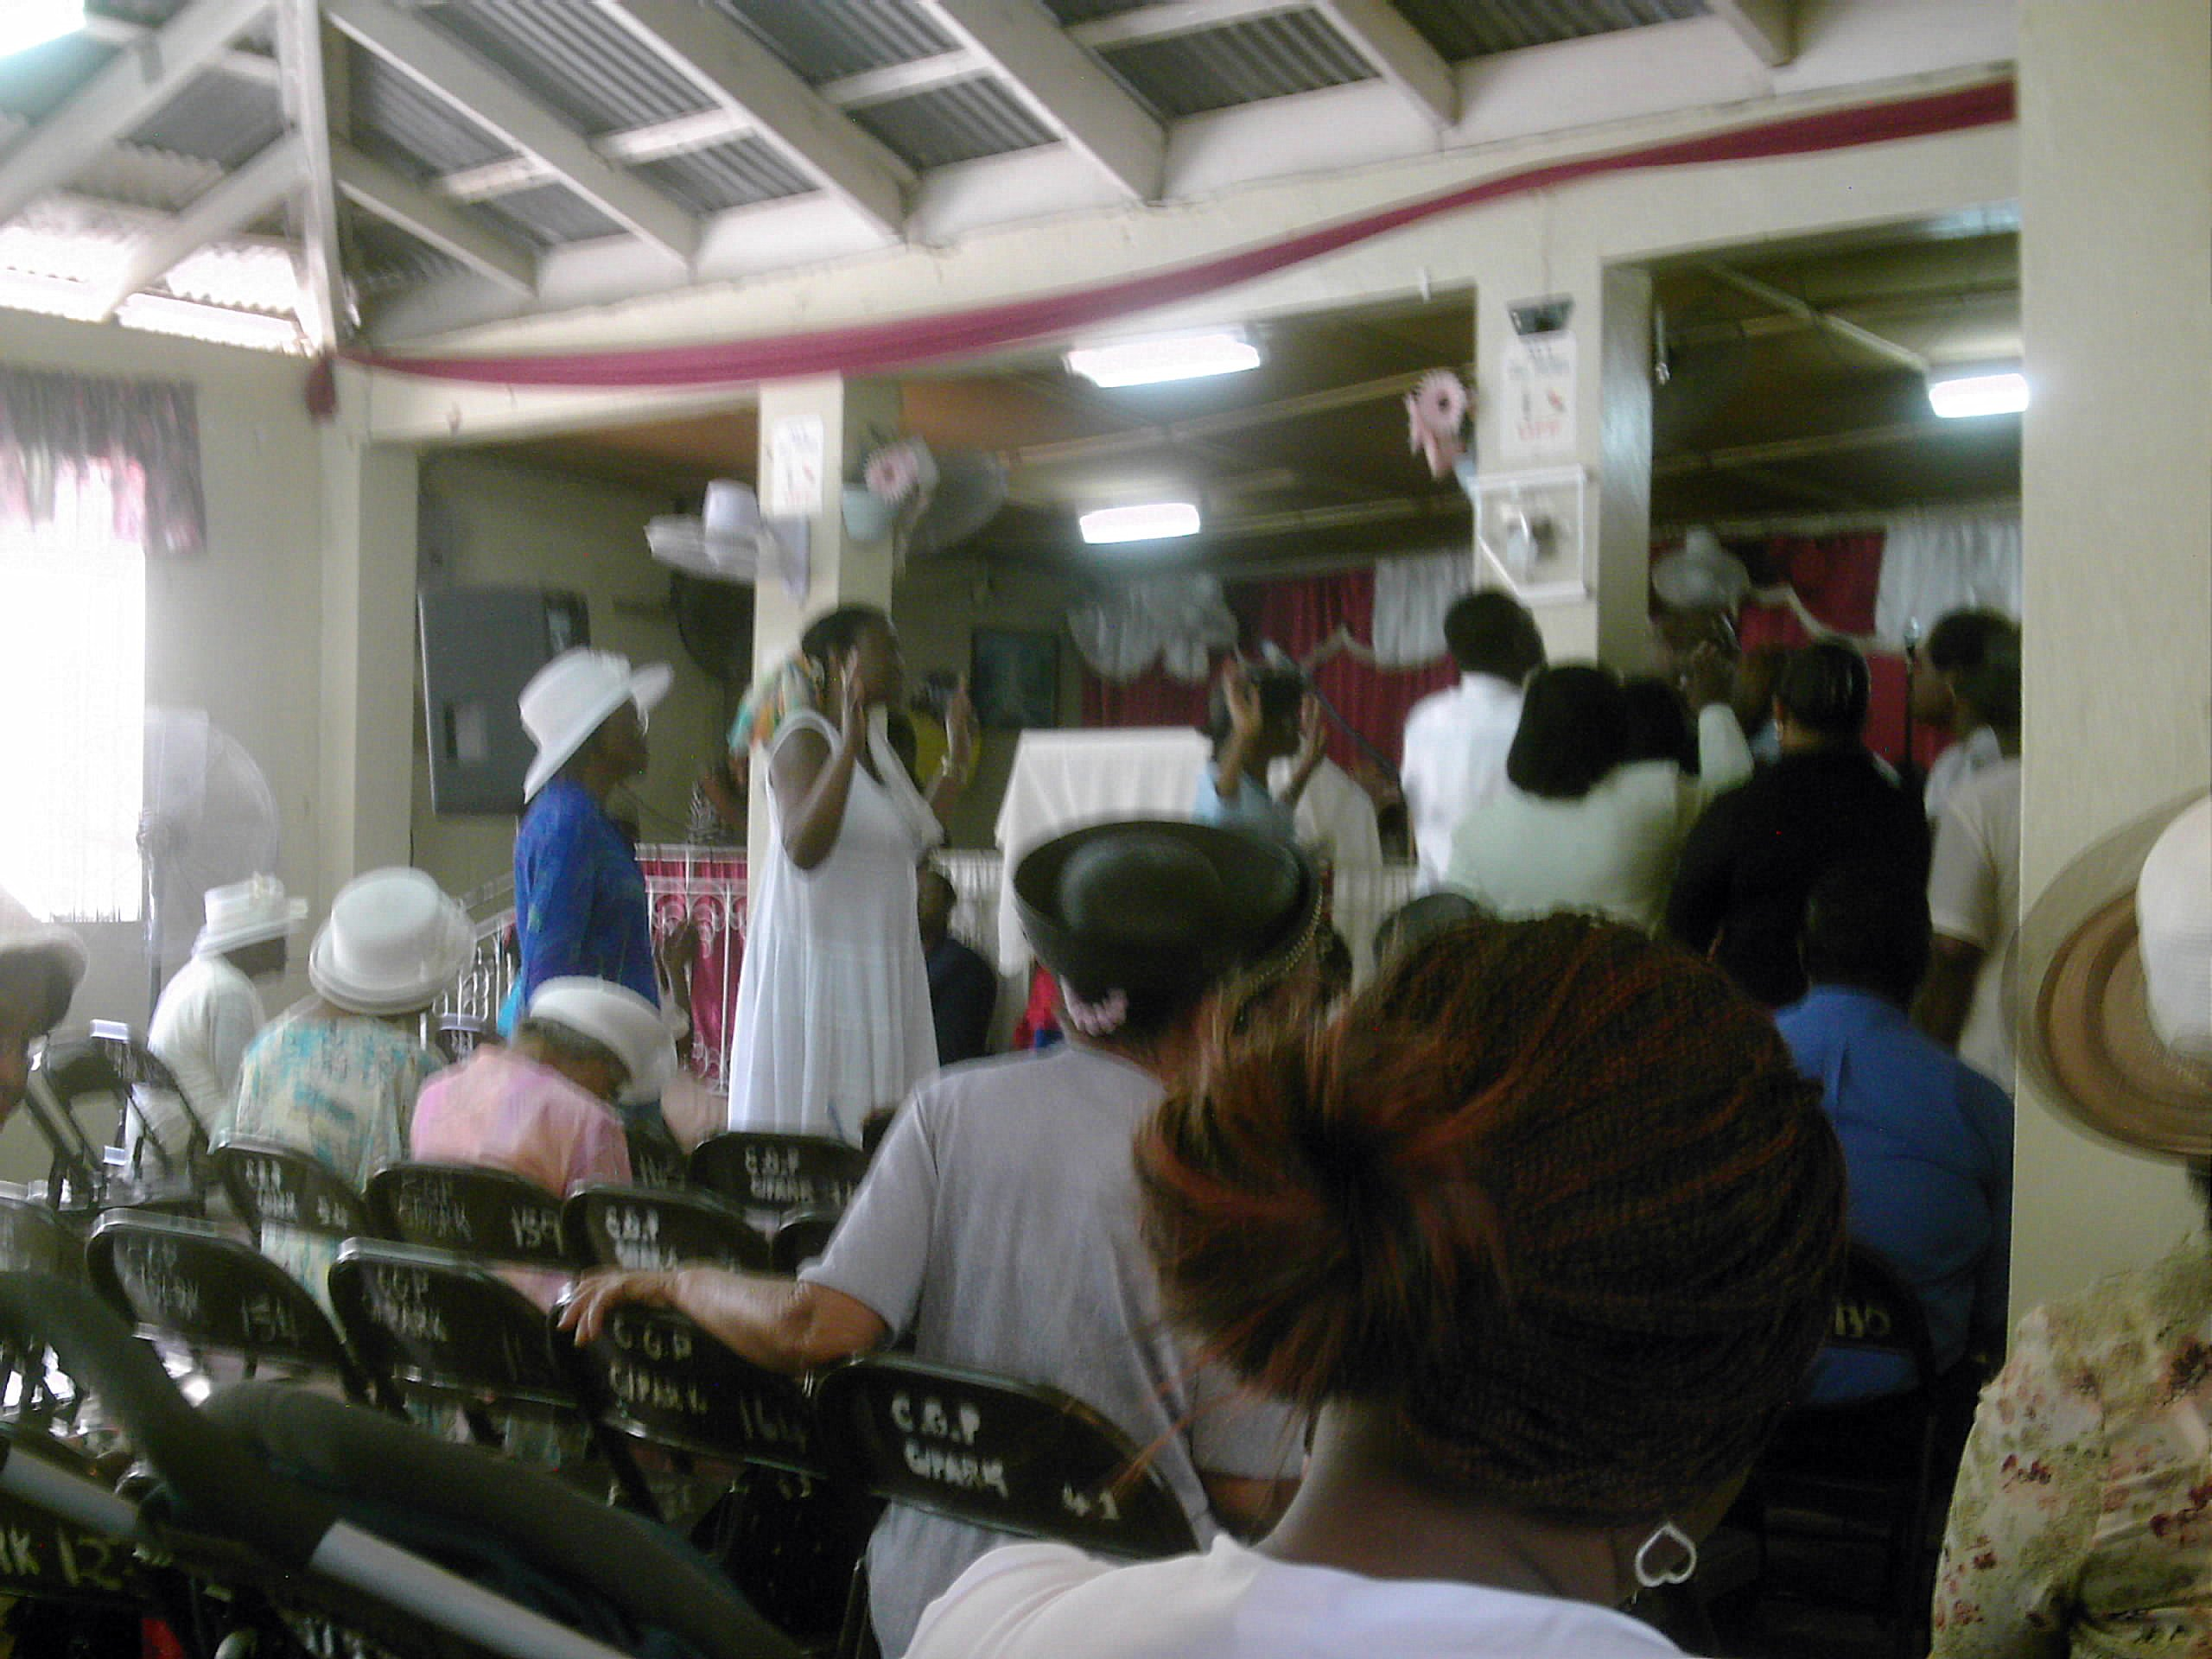 Gregory Park Church Of God of Prophesy